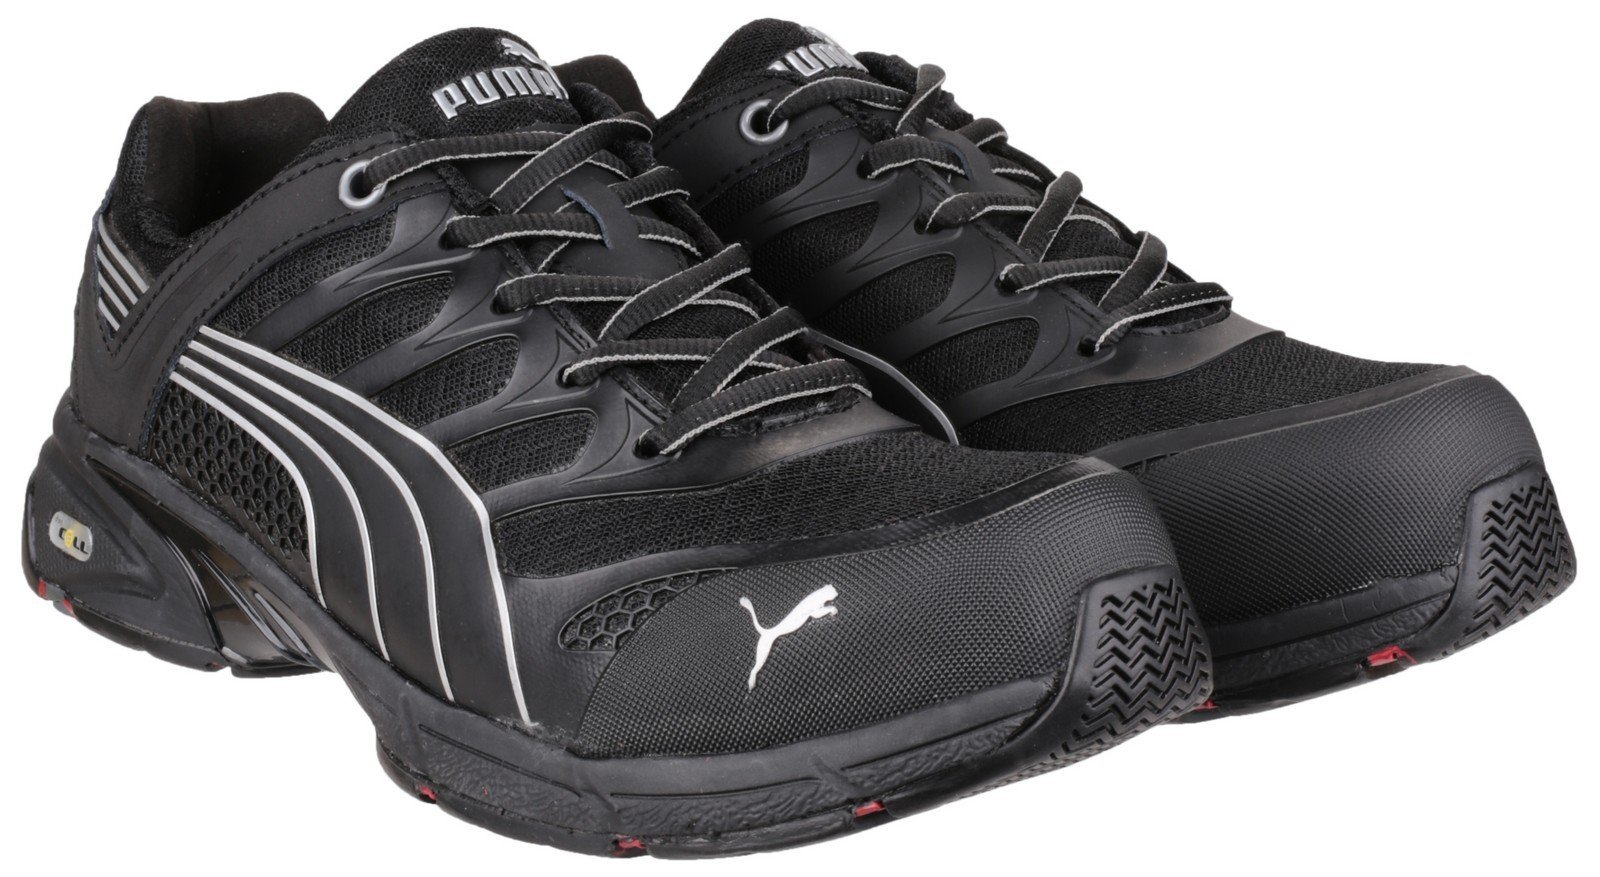 Puma Fuse Motion Black Low Safety Boot (EUR 46 US 12) by -puma (Image #5)